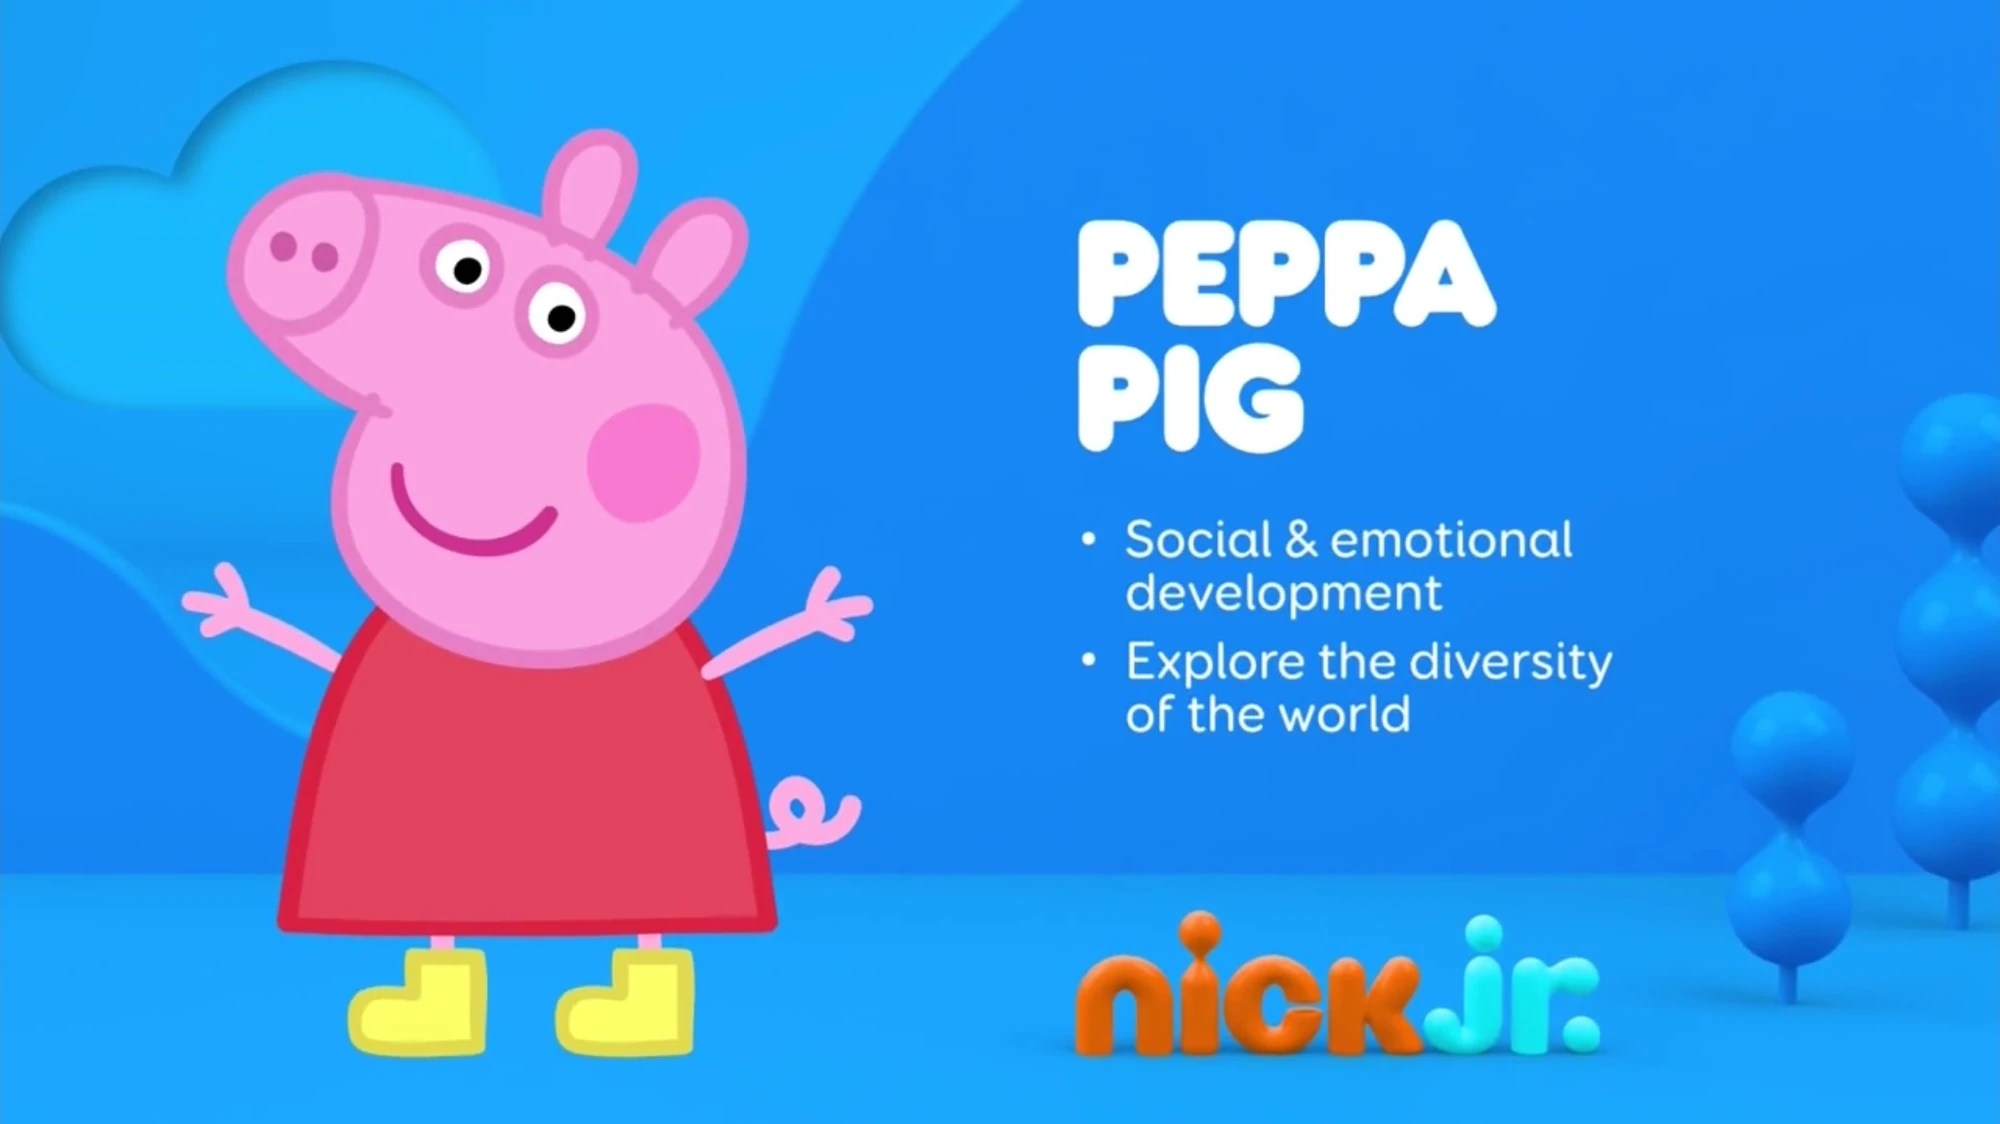 20 Blues Clues Nick Jr Pigs Pictures And Ideas On Meta Networks